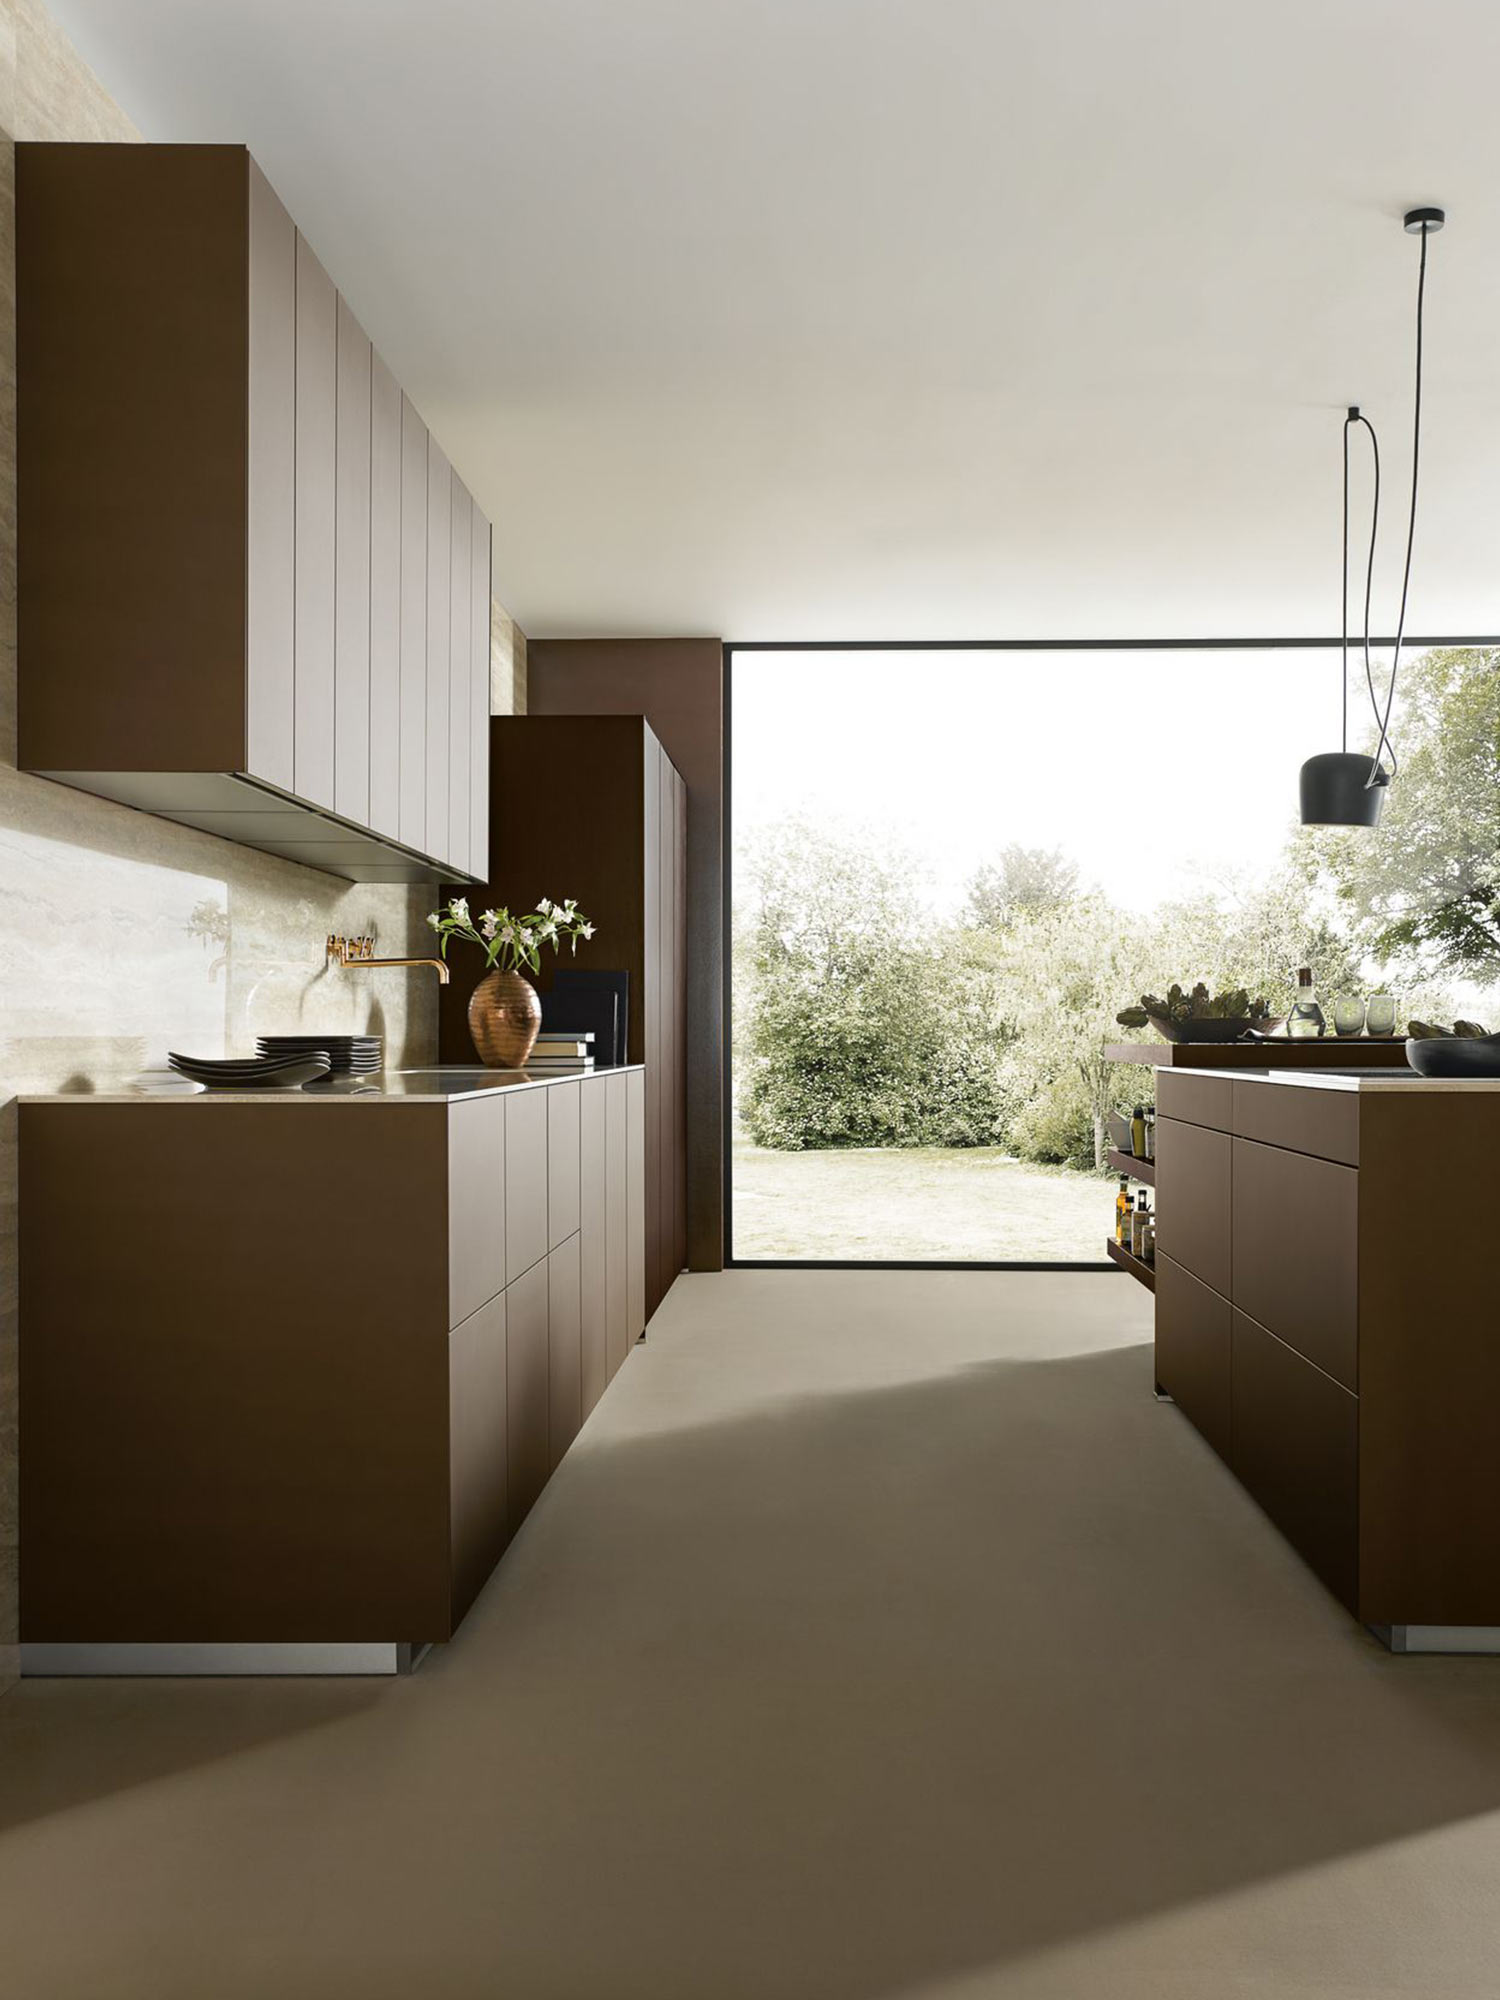 Contemporary German kitchen design for modern living by Hubble